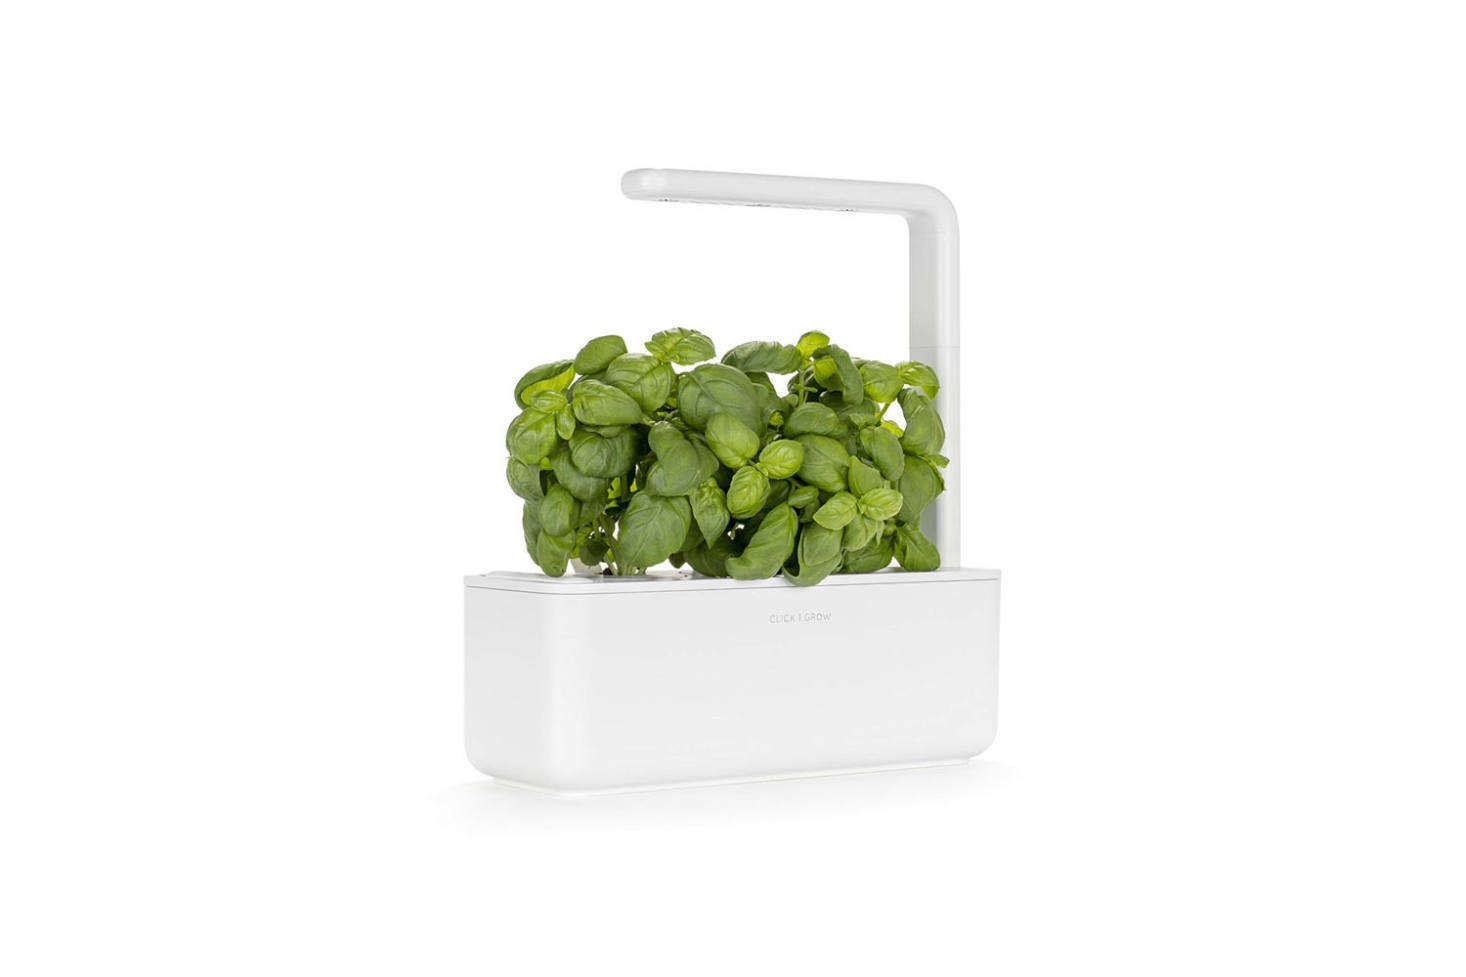 The Click & Grown Smart Garden 3 Indoor Gardening Kit comes with pre-seeded cartridges that drop into the basin and grow by way of &#8